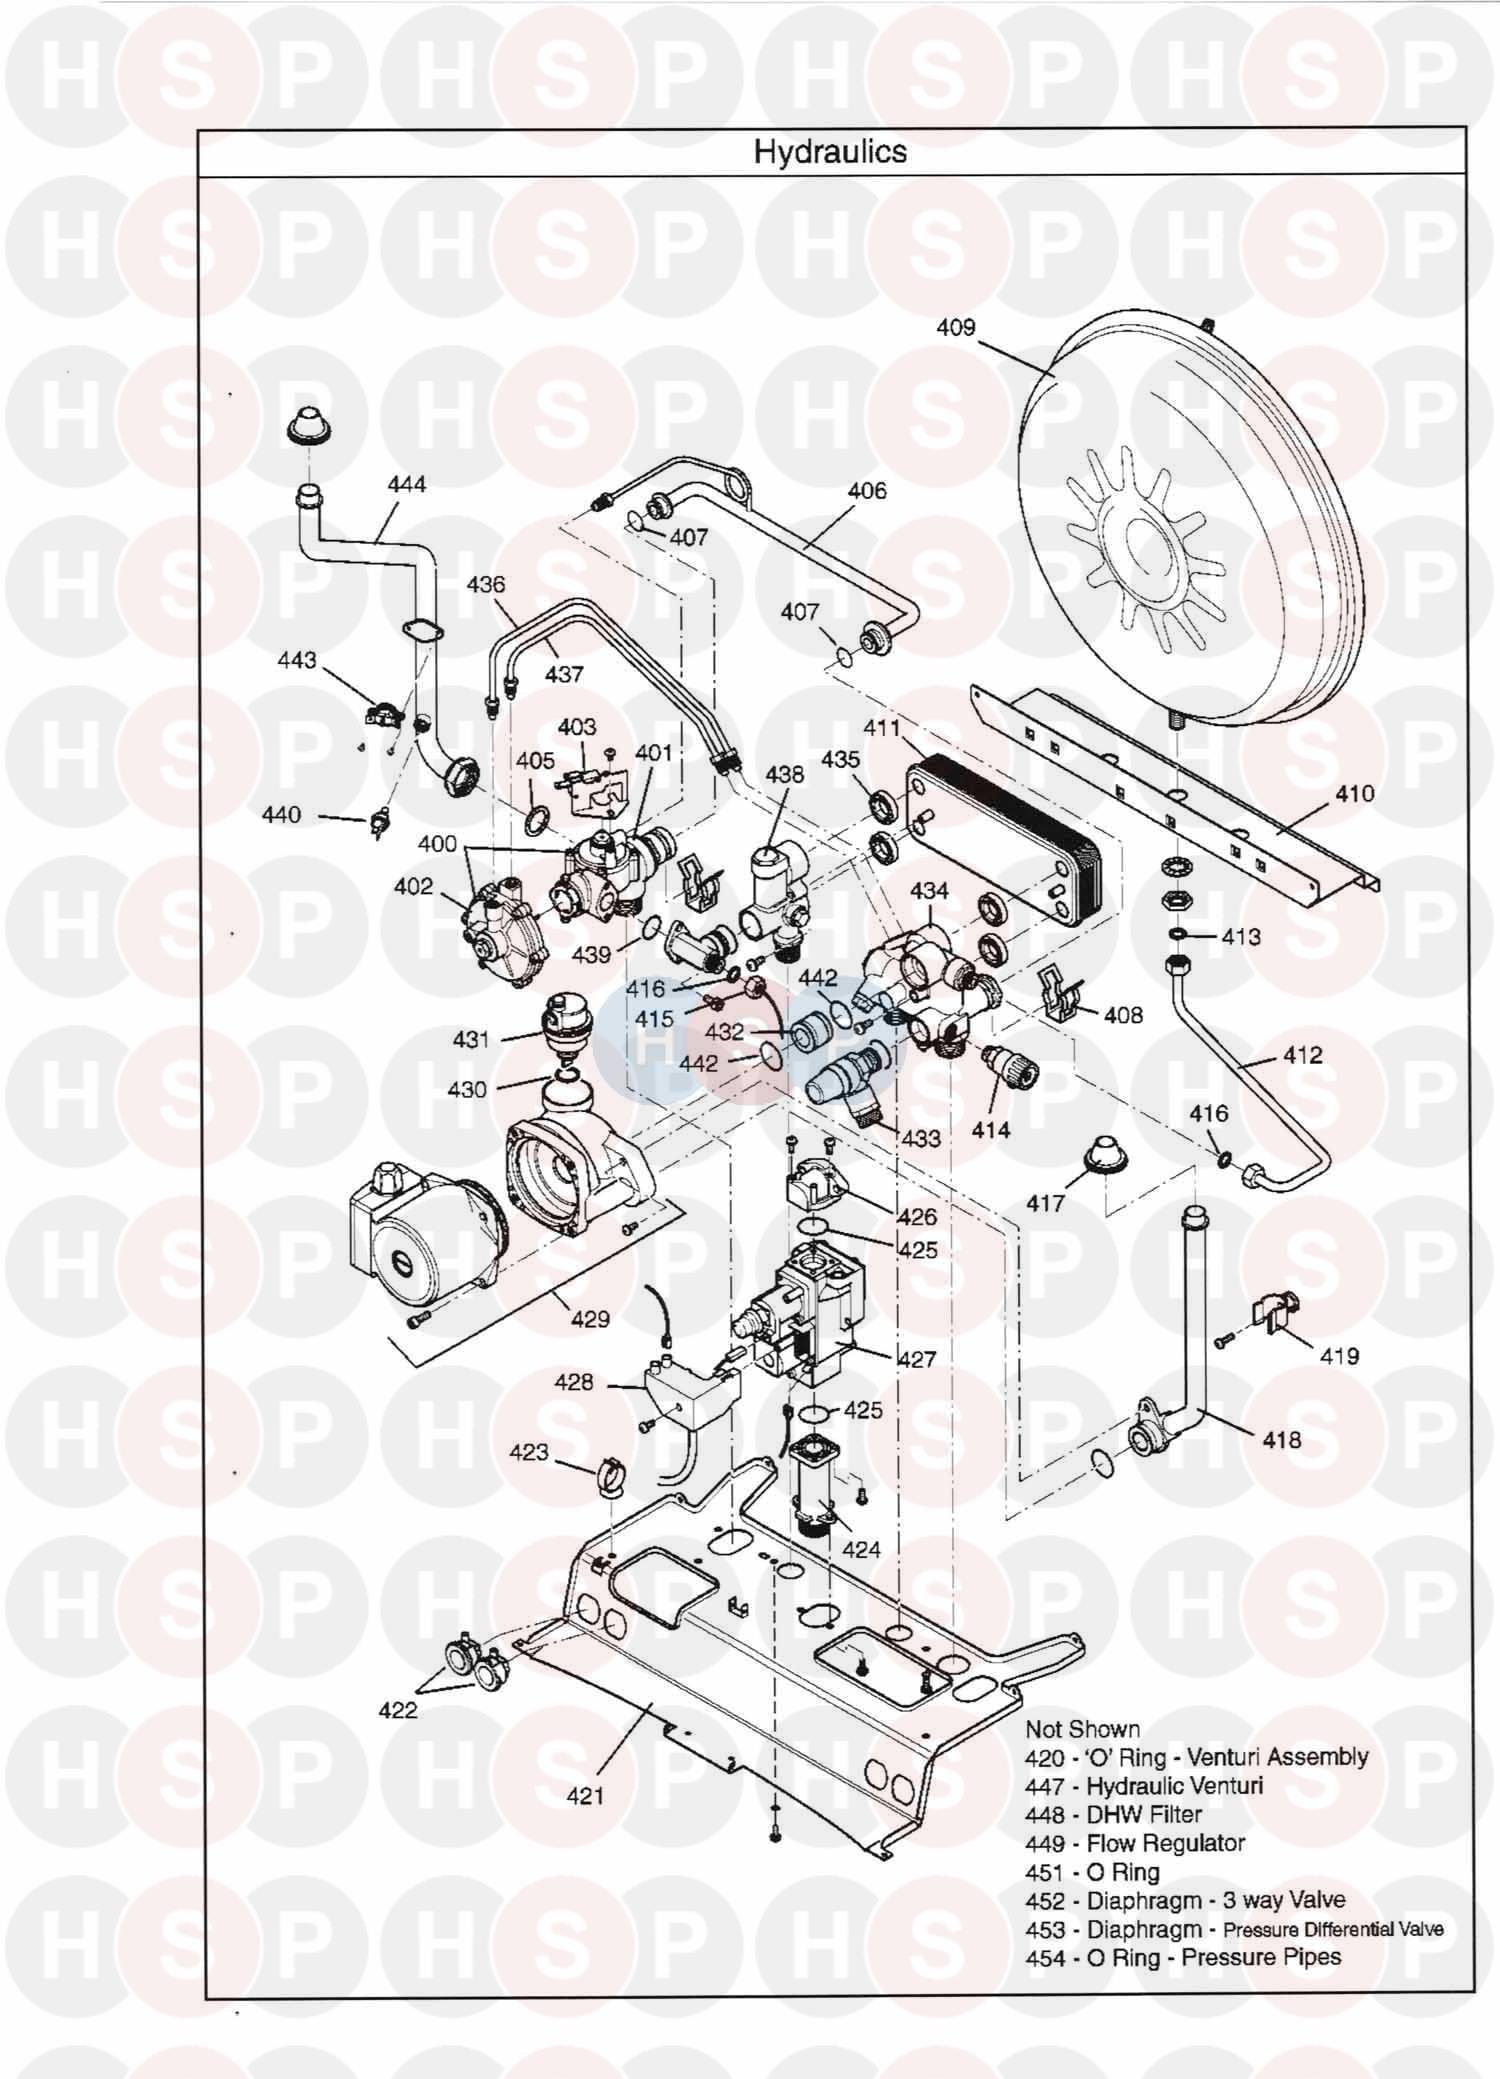 Main Combi 30he Hydraulics Diagram Heating Spare Parts